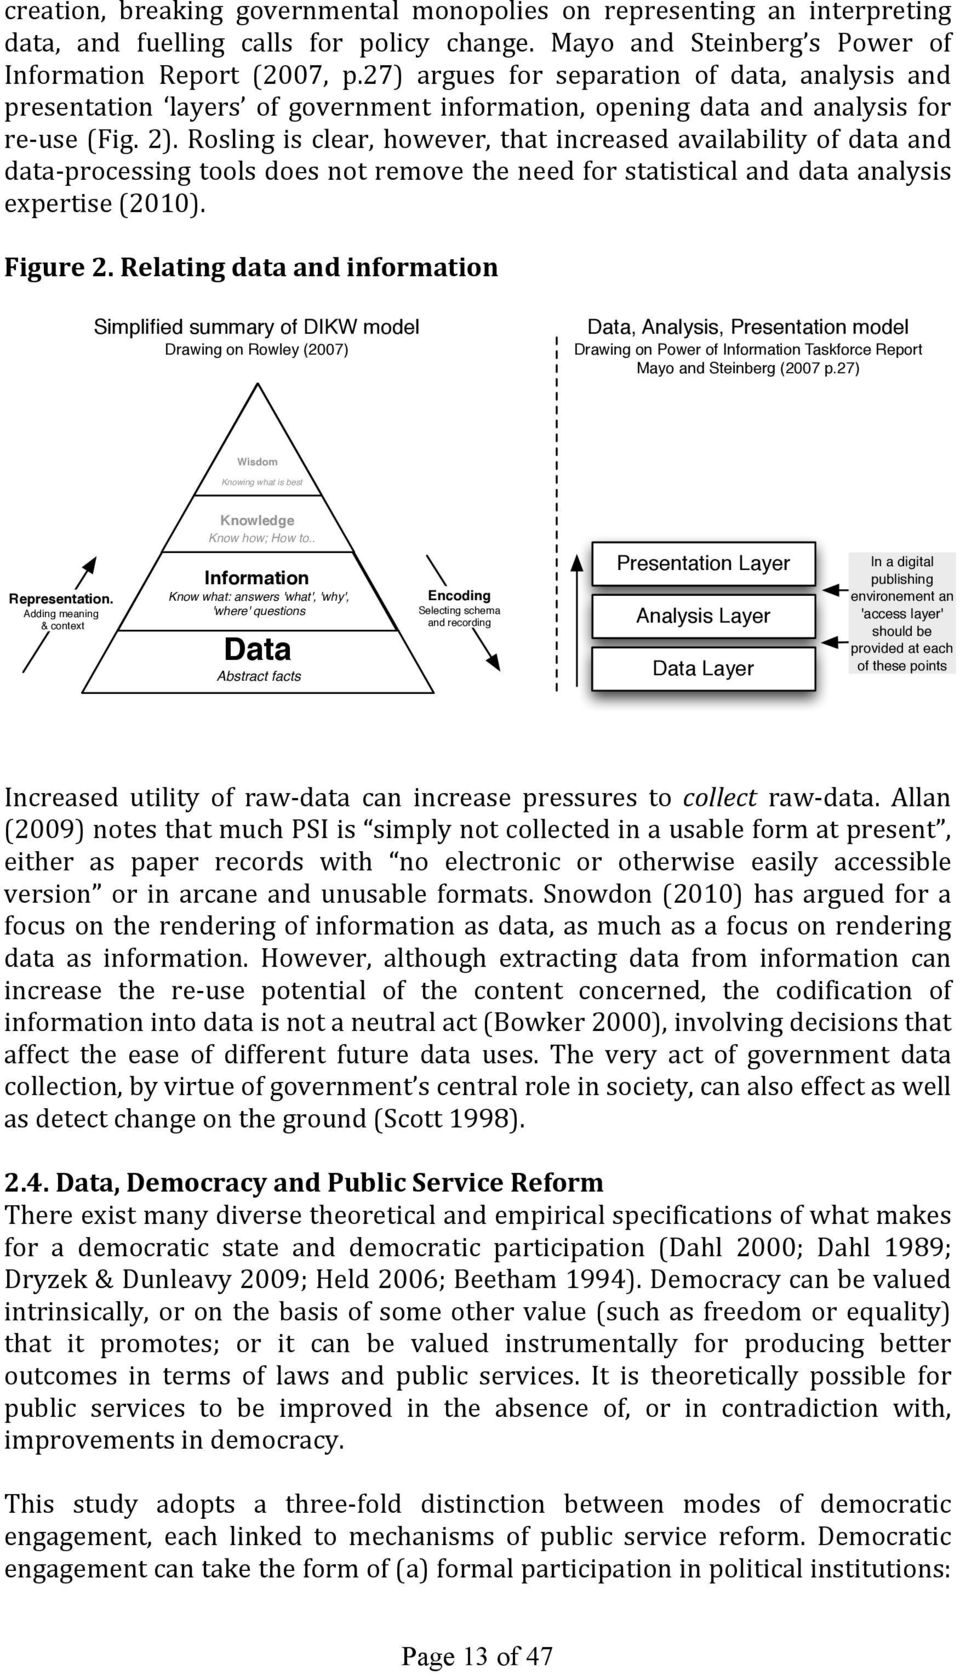 Rosling is clear, however, that increased availability of data and data- processing tools does not remove the need for statistical and data analysis expertise (2010). Figure 2.